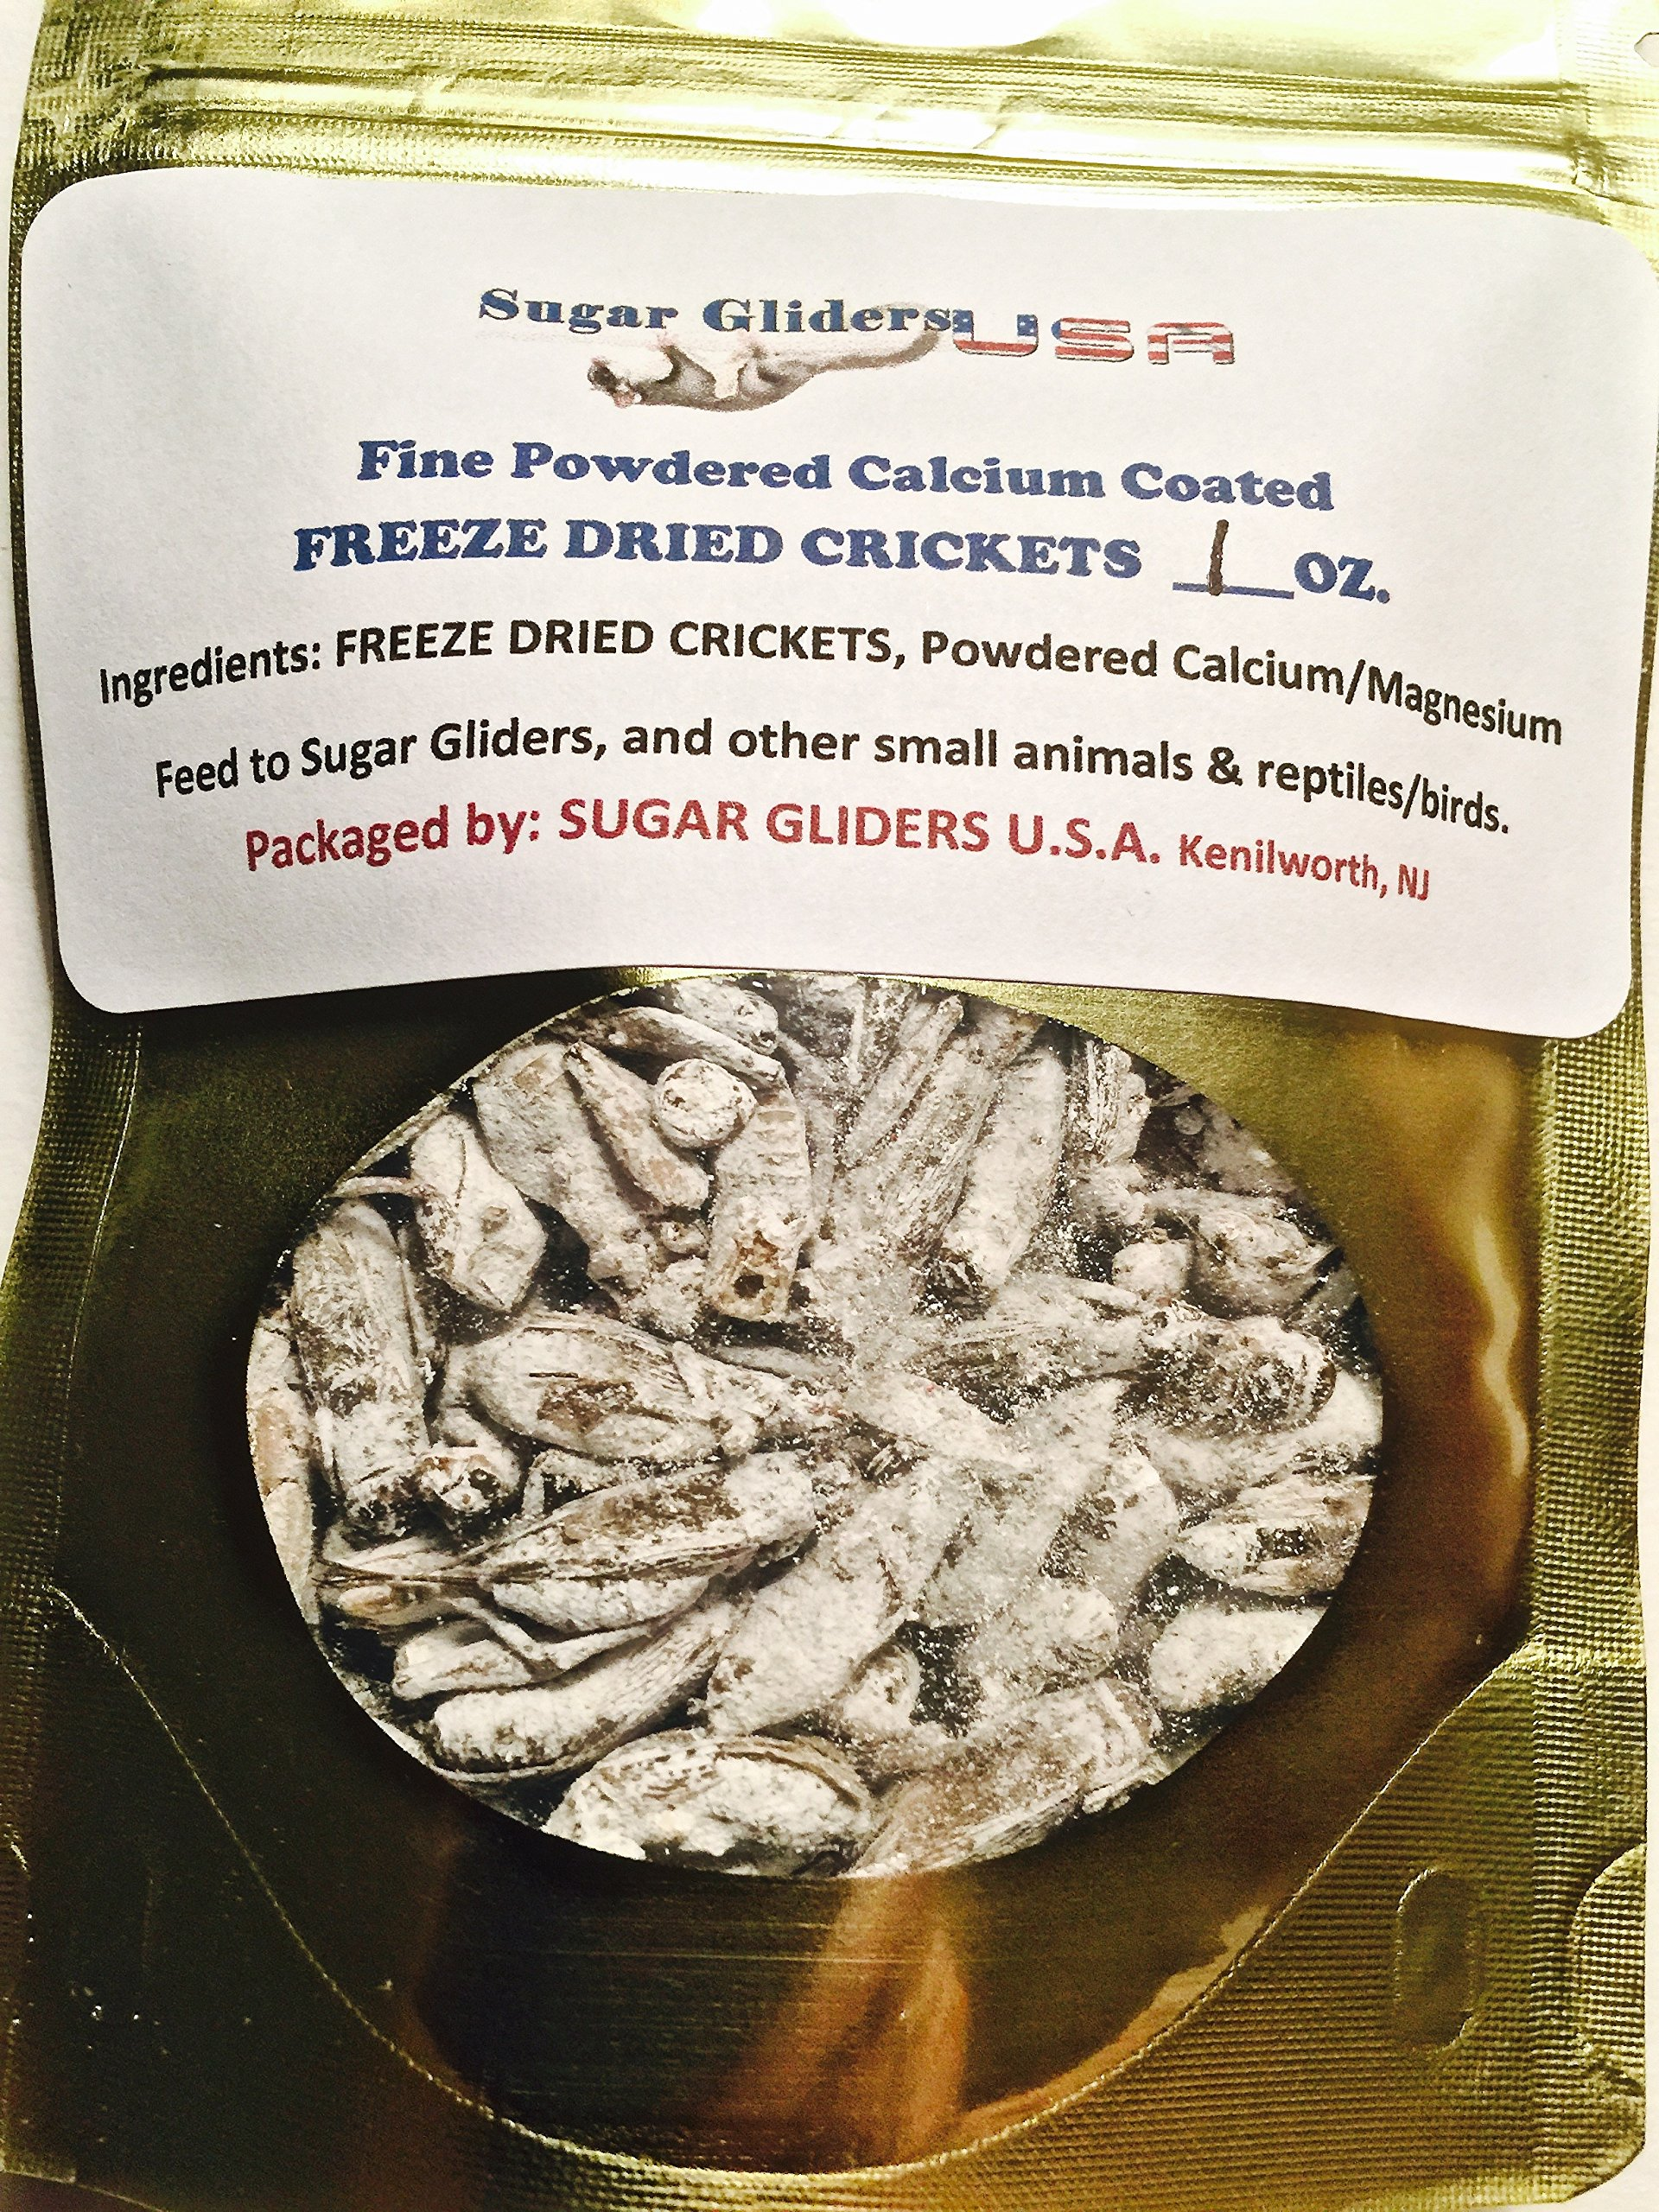 FREEZE DRIED CALCIUM COATED CRICKETS (3 OZ) 100+ by Sugar Gliders USA